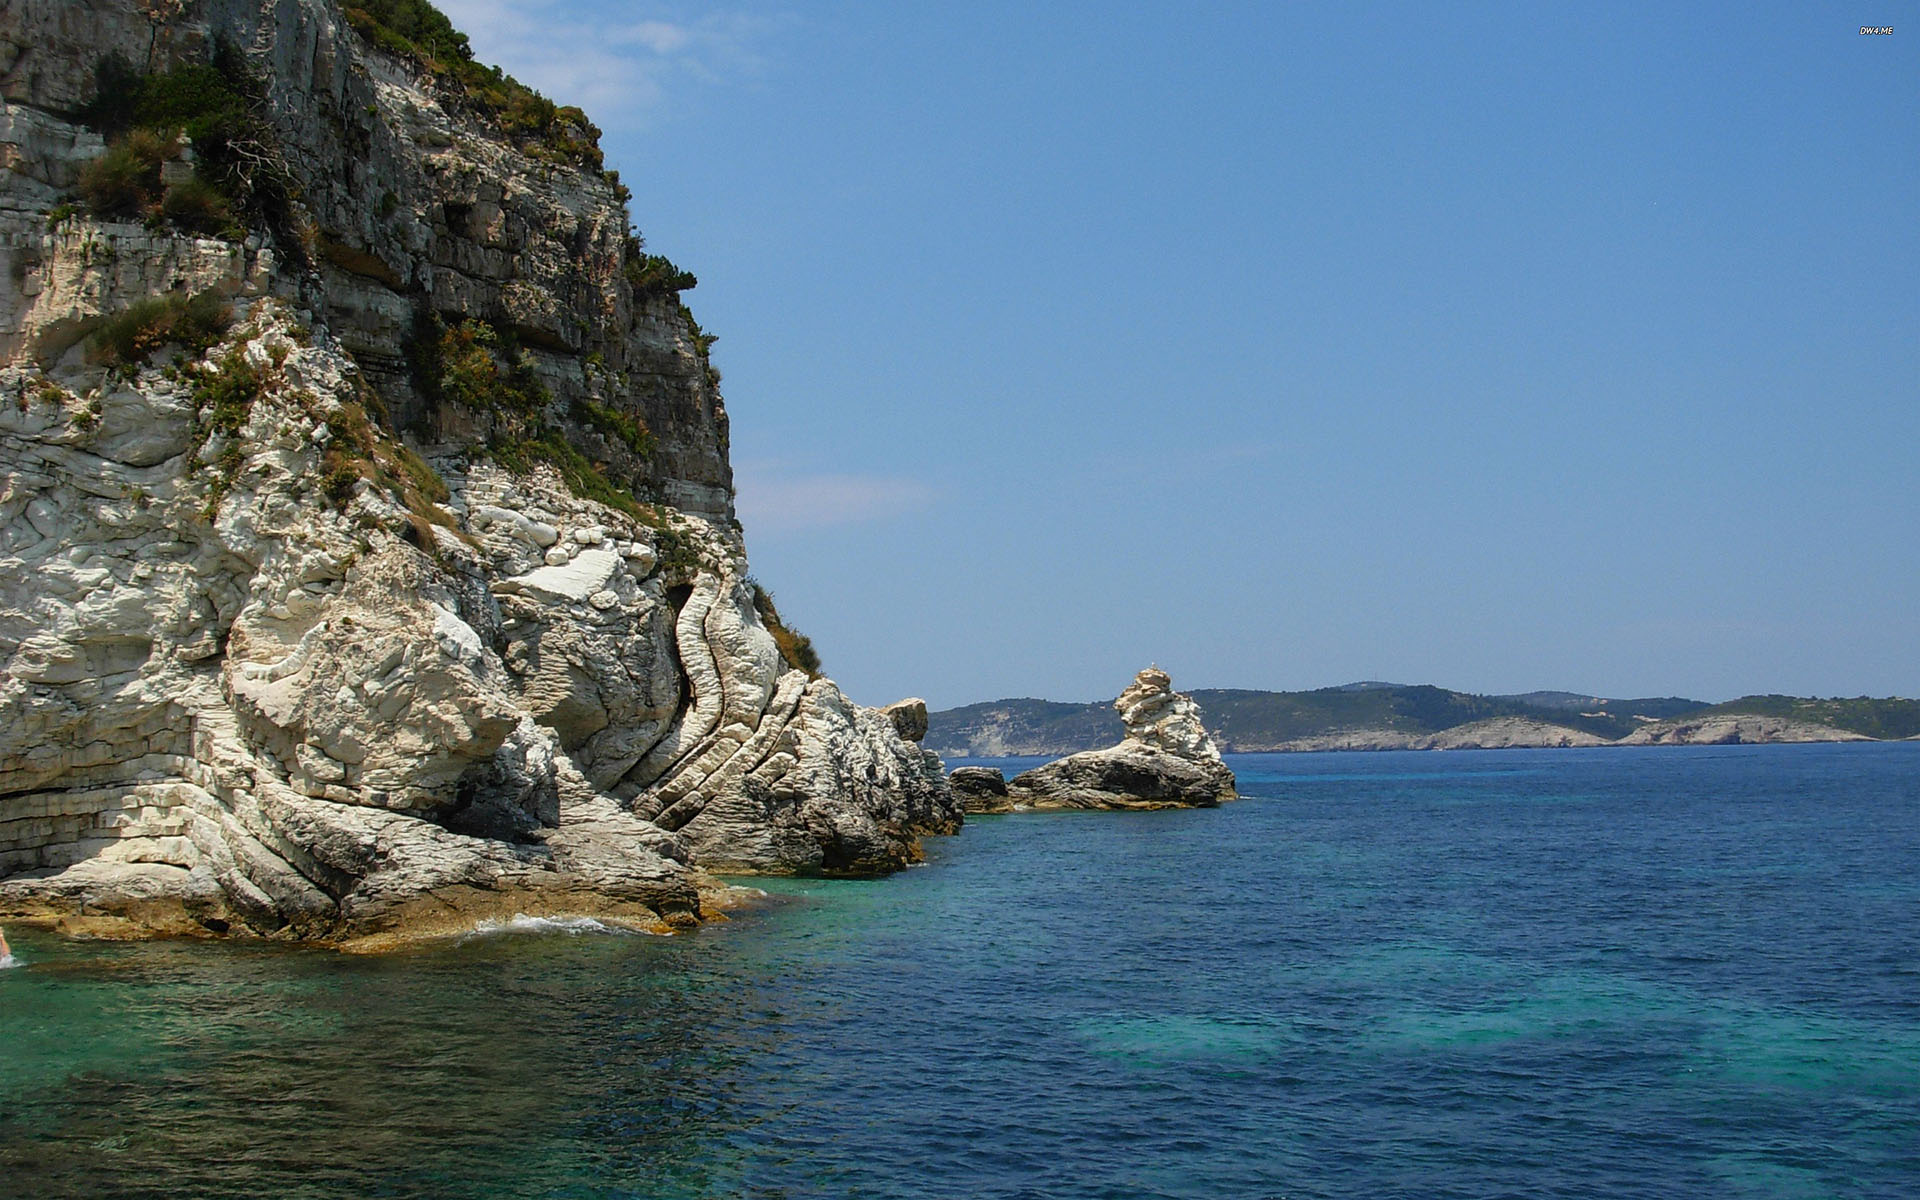 Yacht Charter Paxi Sailing in Greece and GreekSunYachts